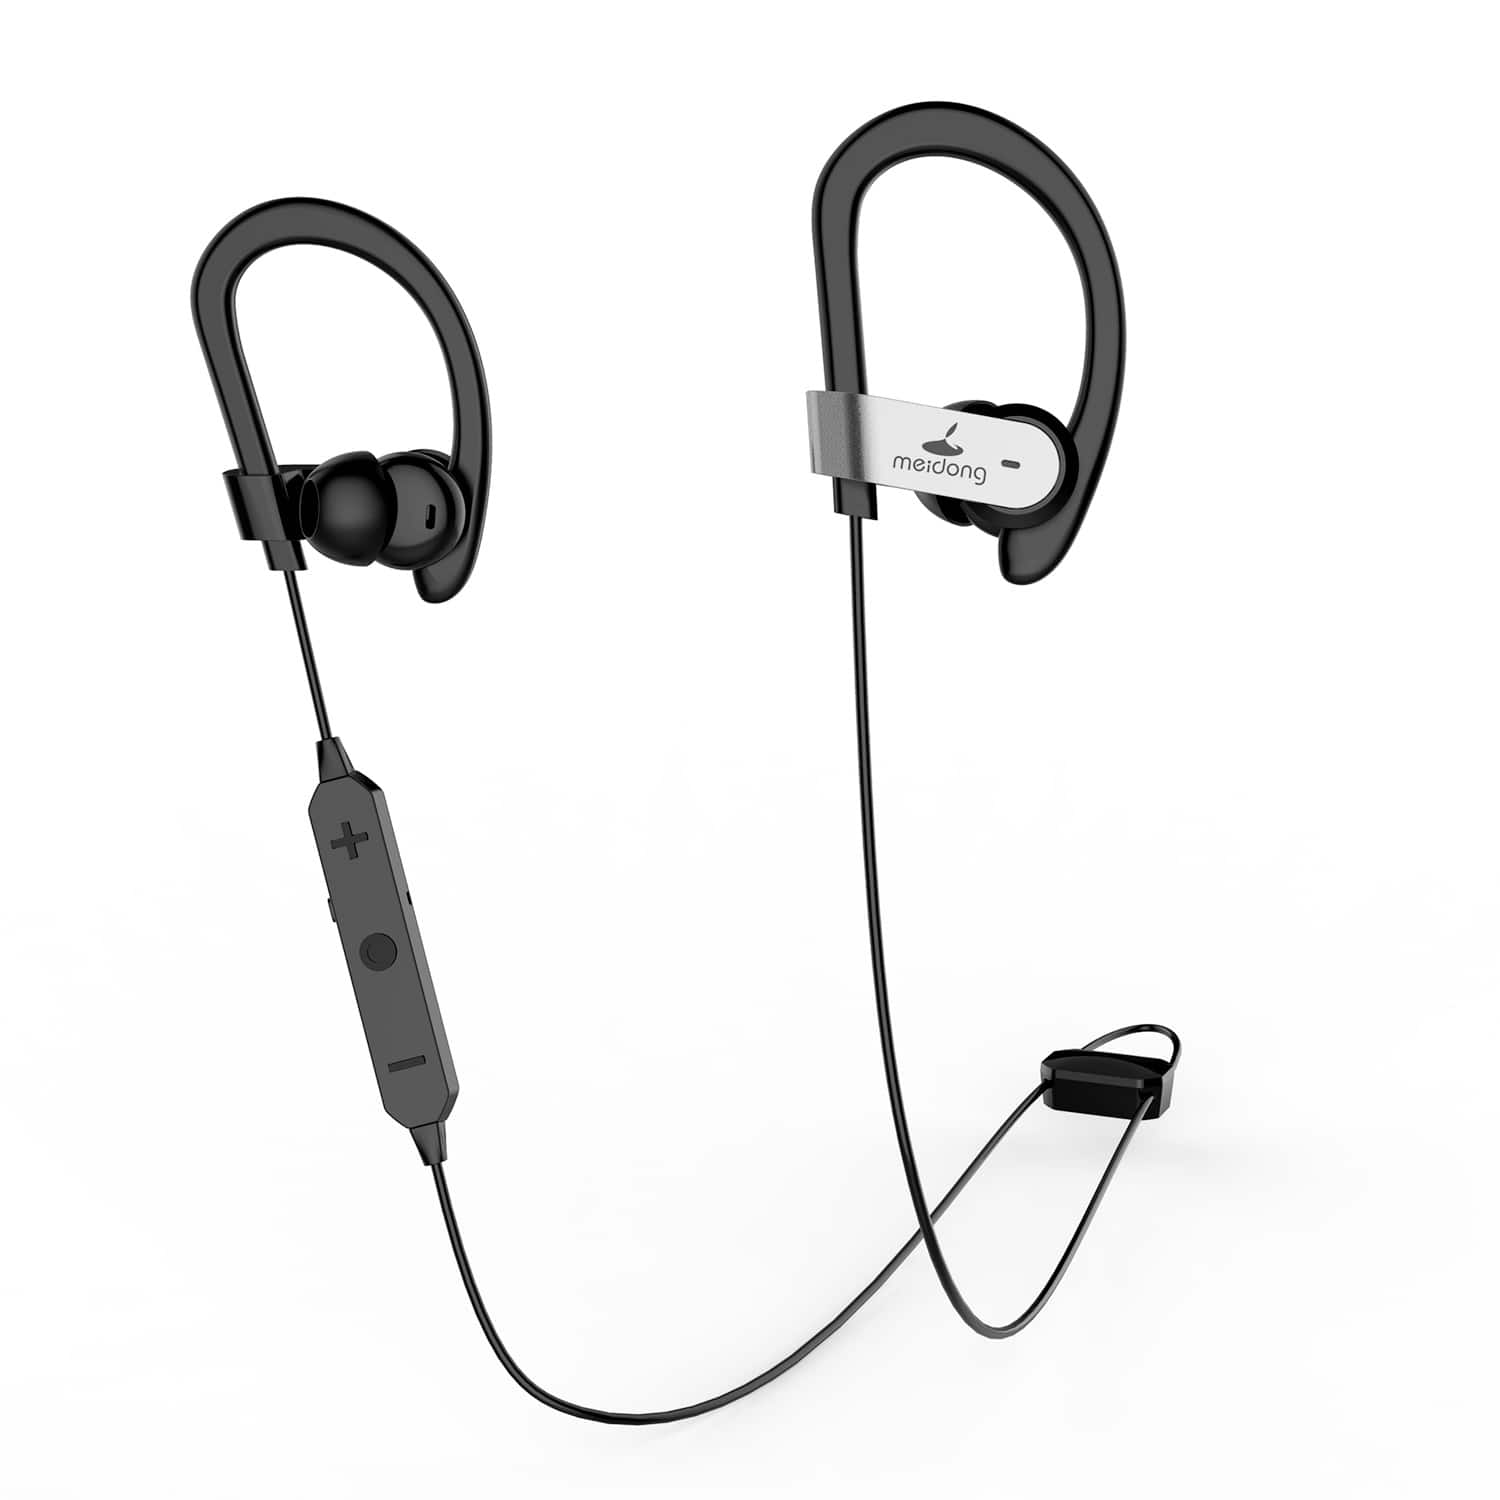 Cowin HE8-C Wireless Bluetooth Active Noise Cancelling In-Ear Headphones with Sweat-Resistant, aptX Built in Mic & Vol Control Ear buds $47.99